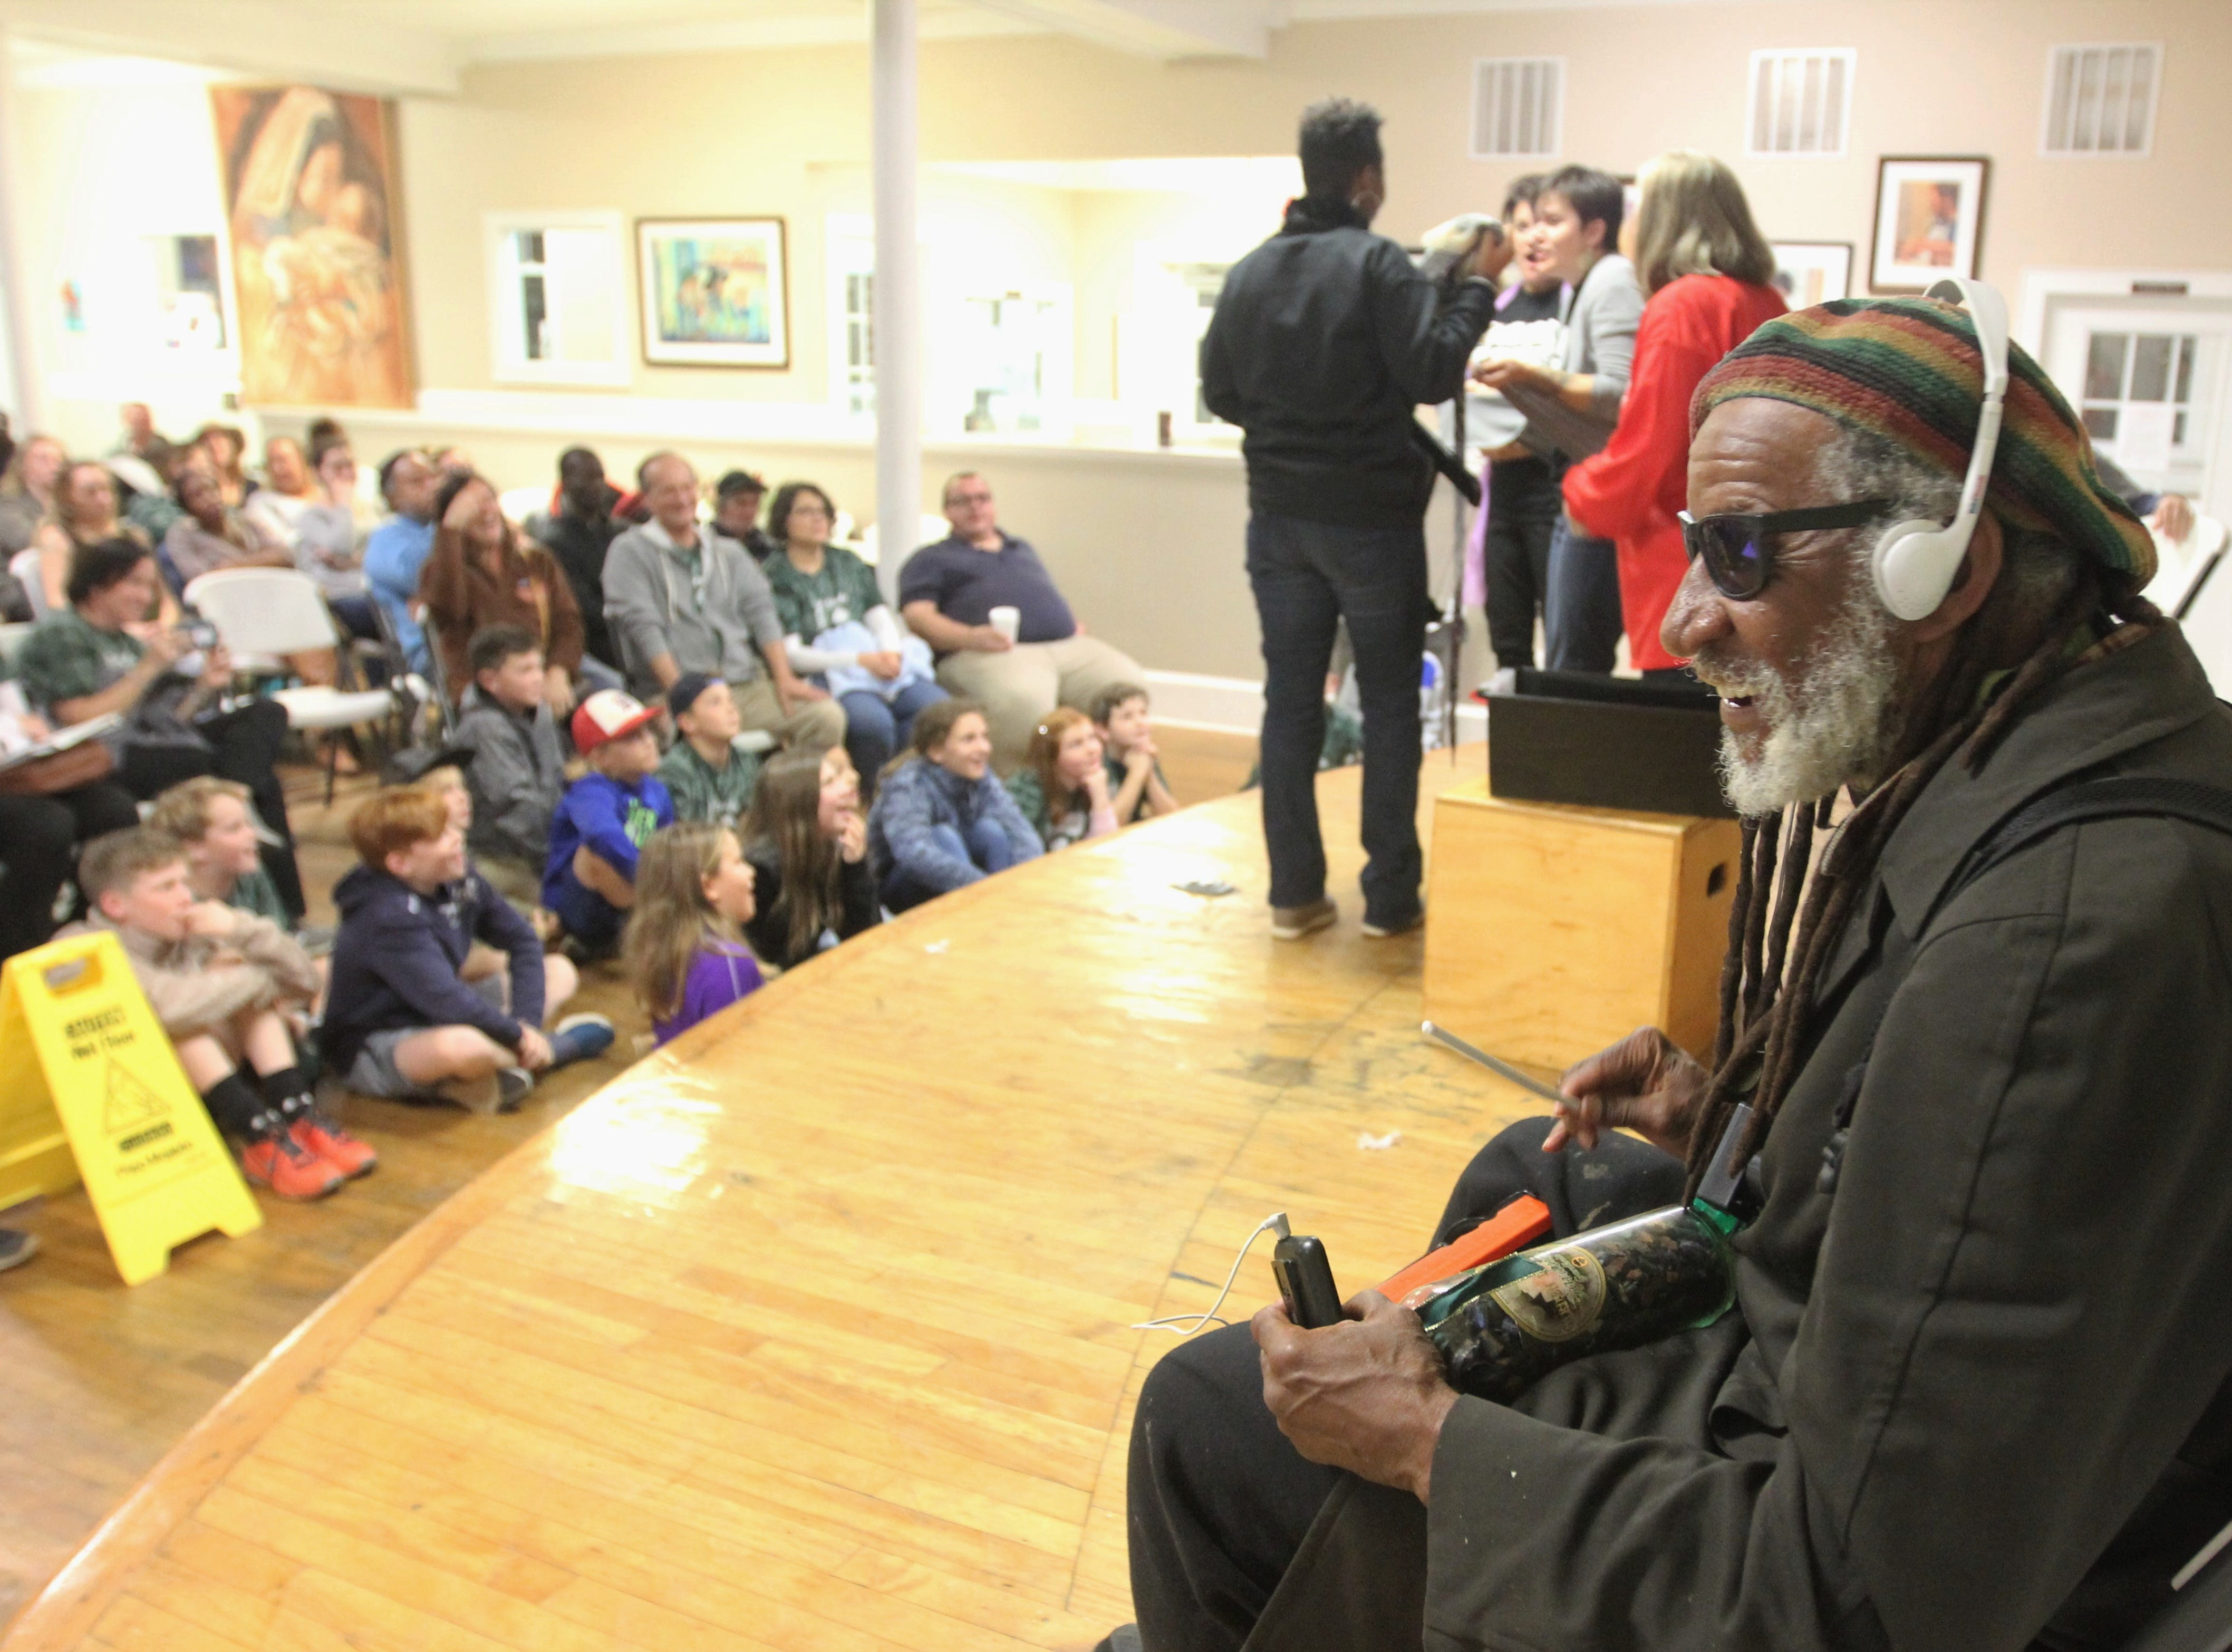 Mr. Earl Grant plays percussion for a group of performers who re-enact stories told by audience members, especially the homeless who come there at Triune Mercy Center.